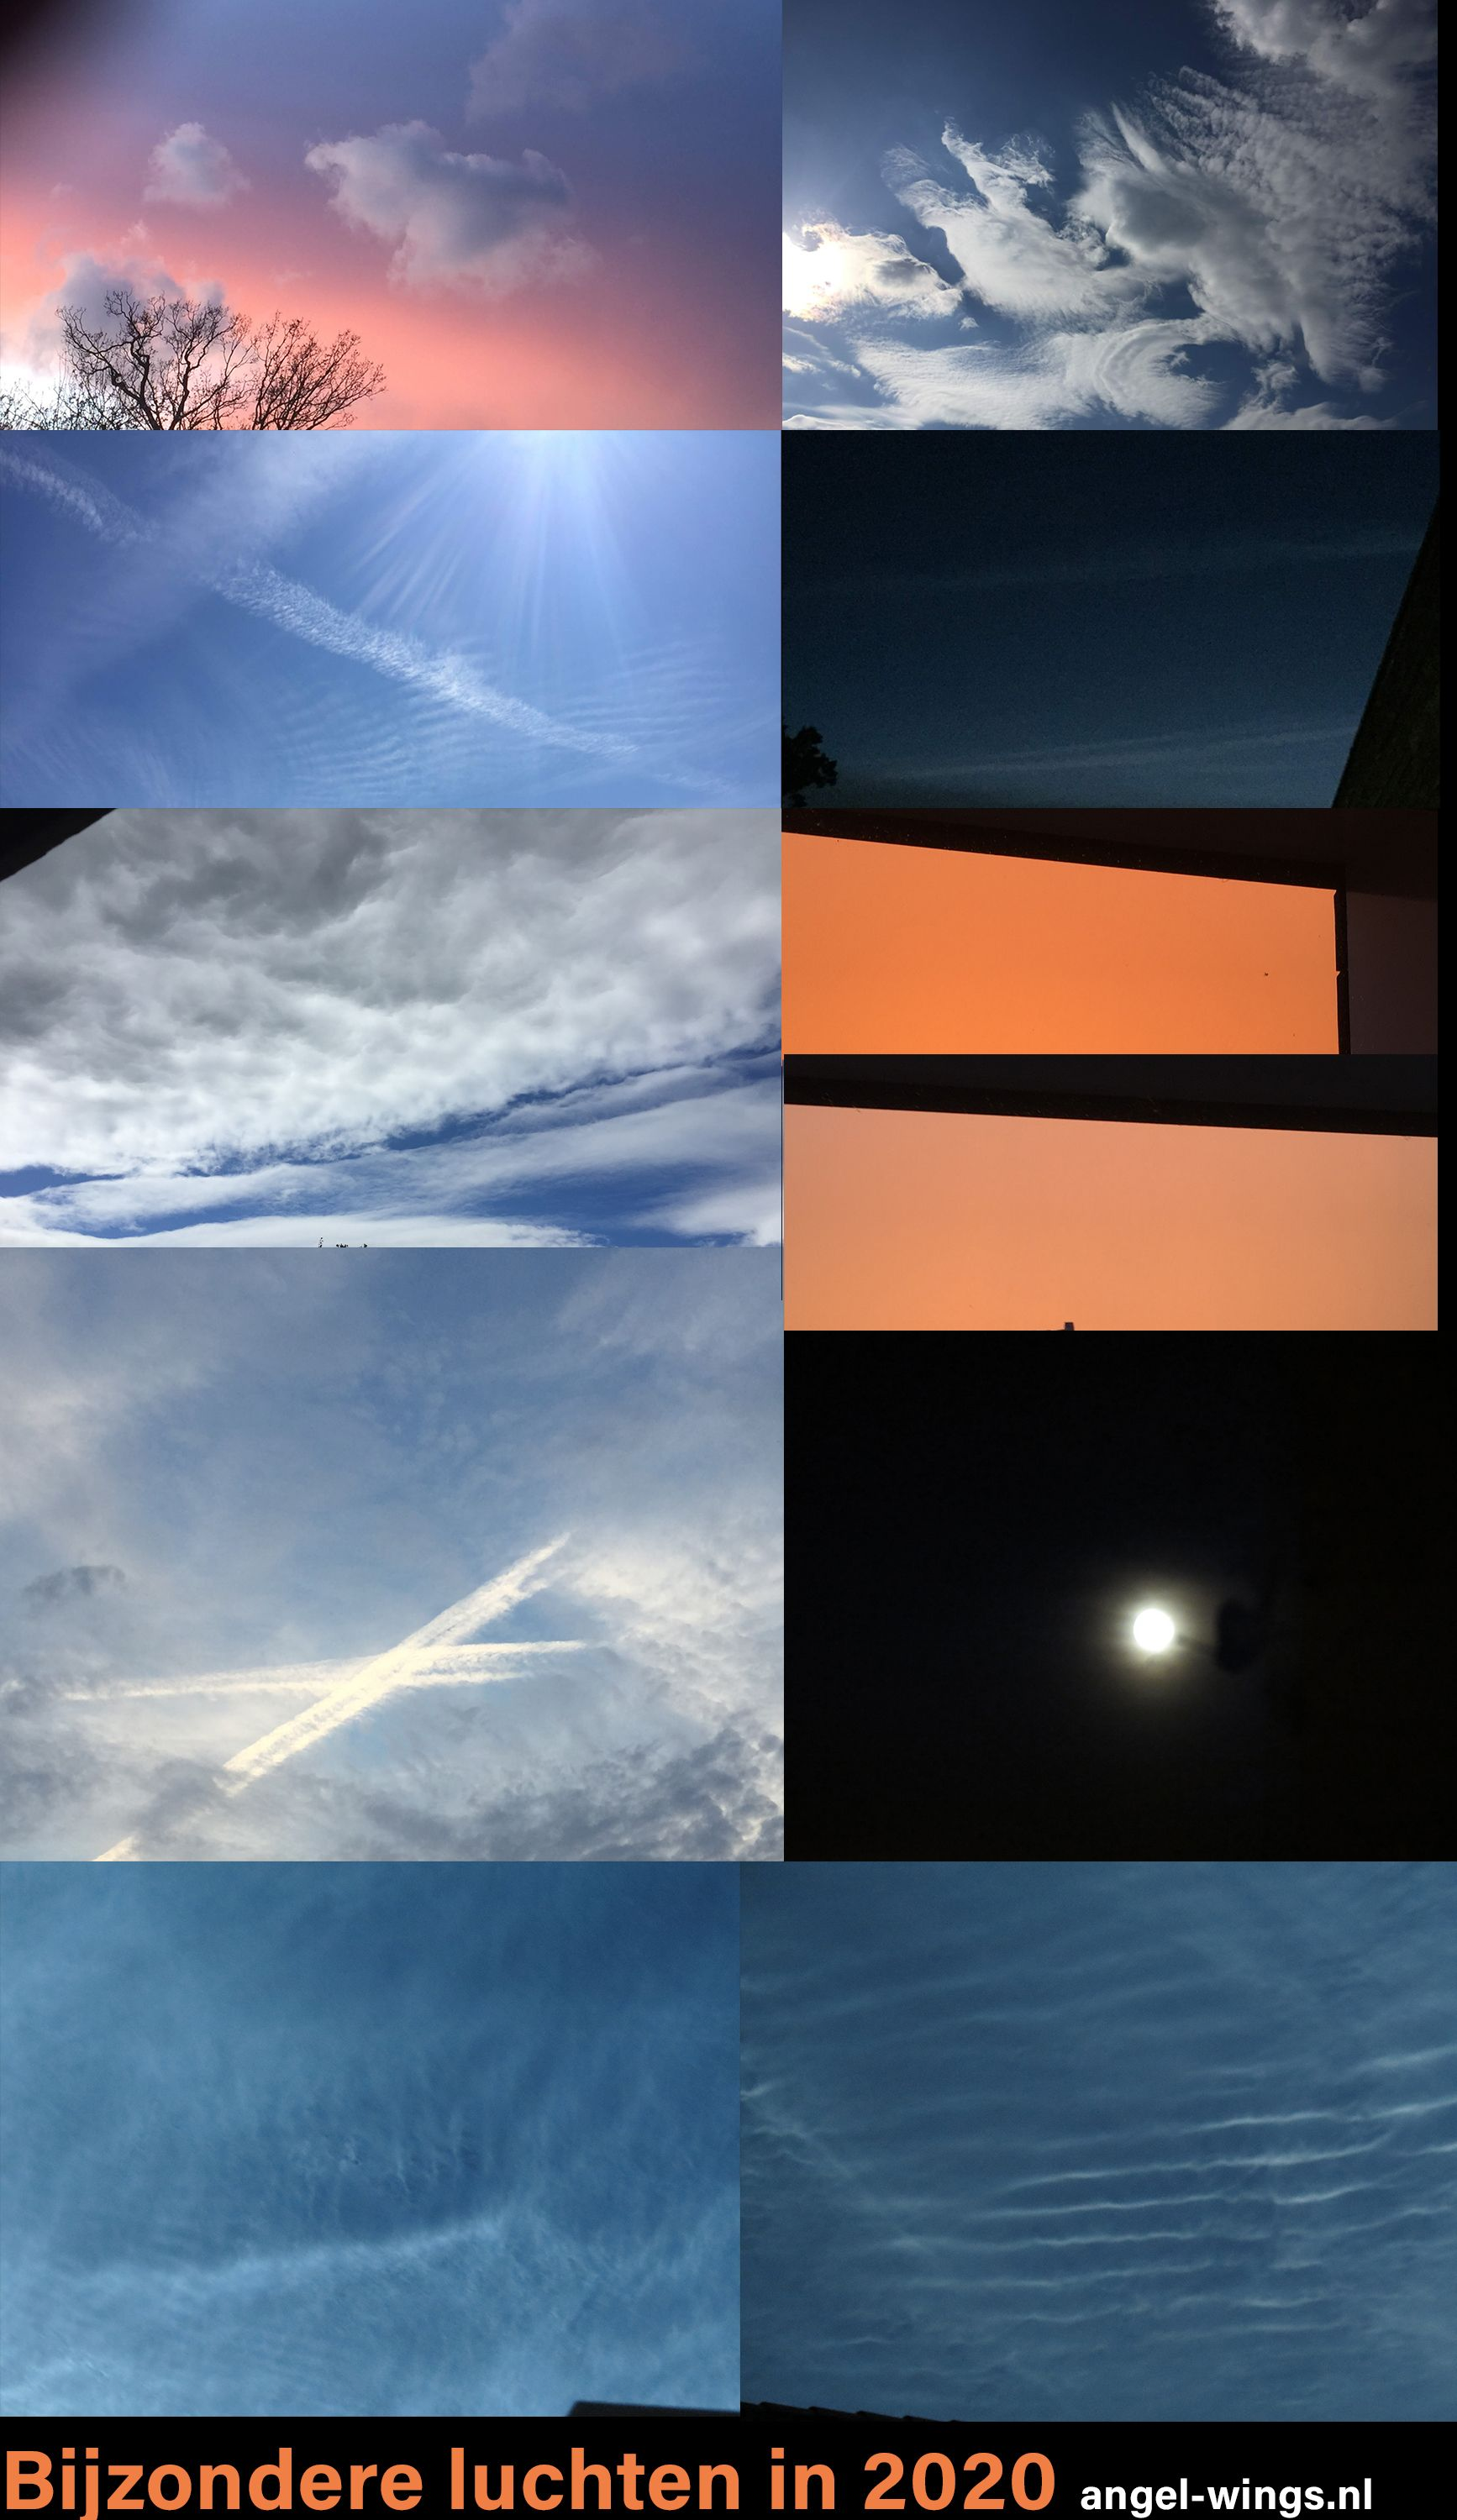 Chemtrail geoengineering lucht 2020 Angel-Wings